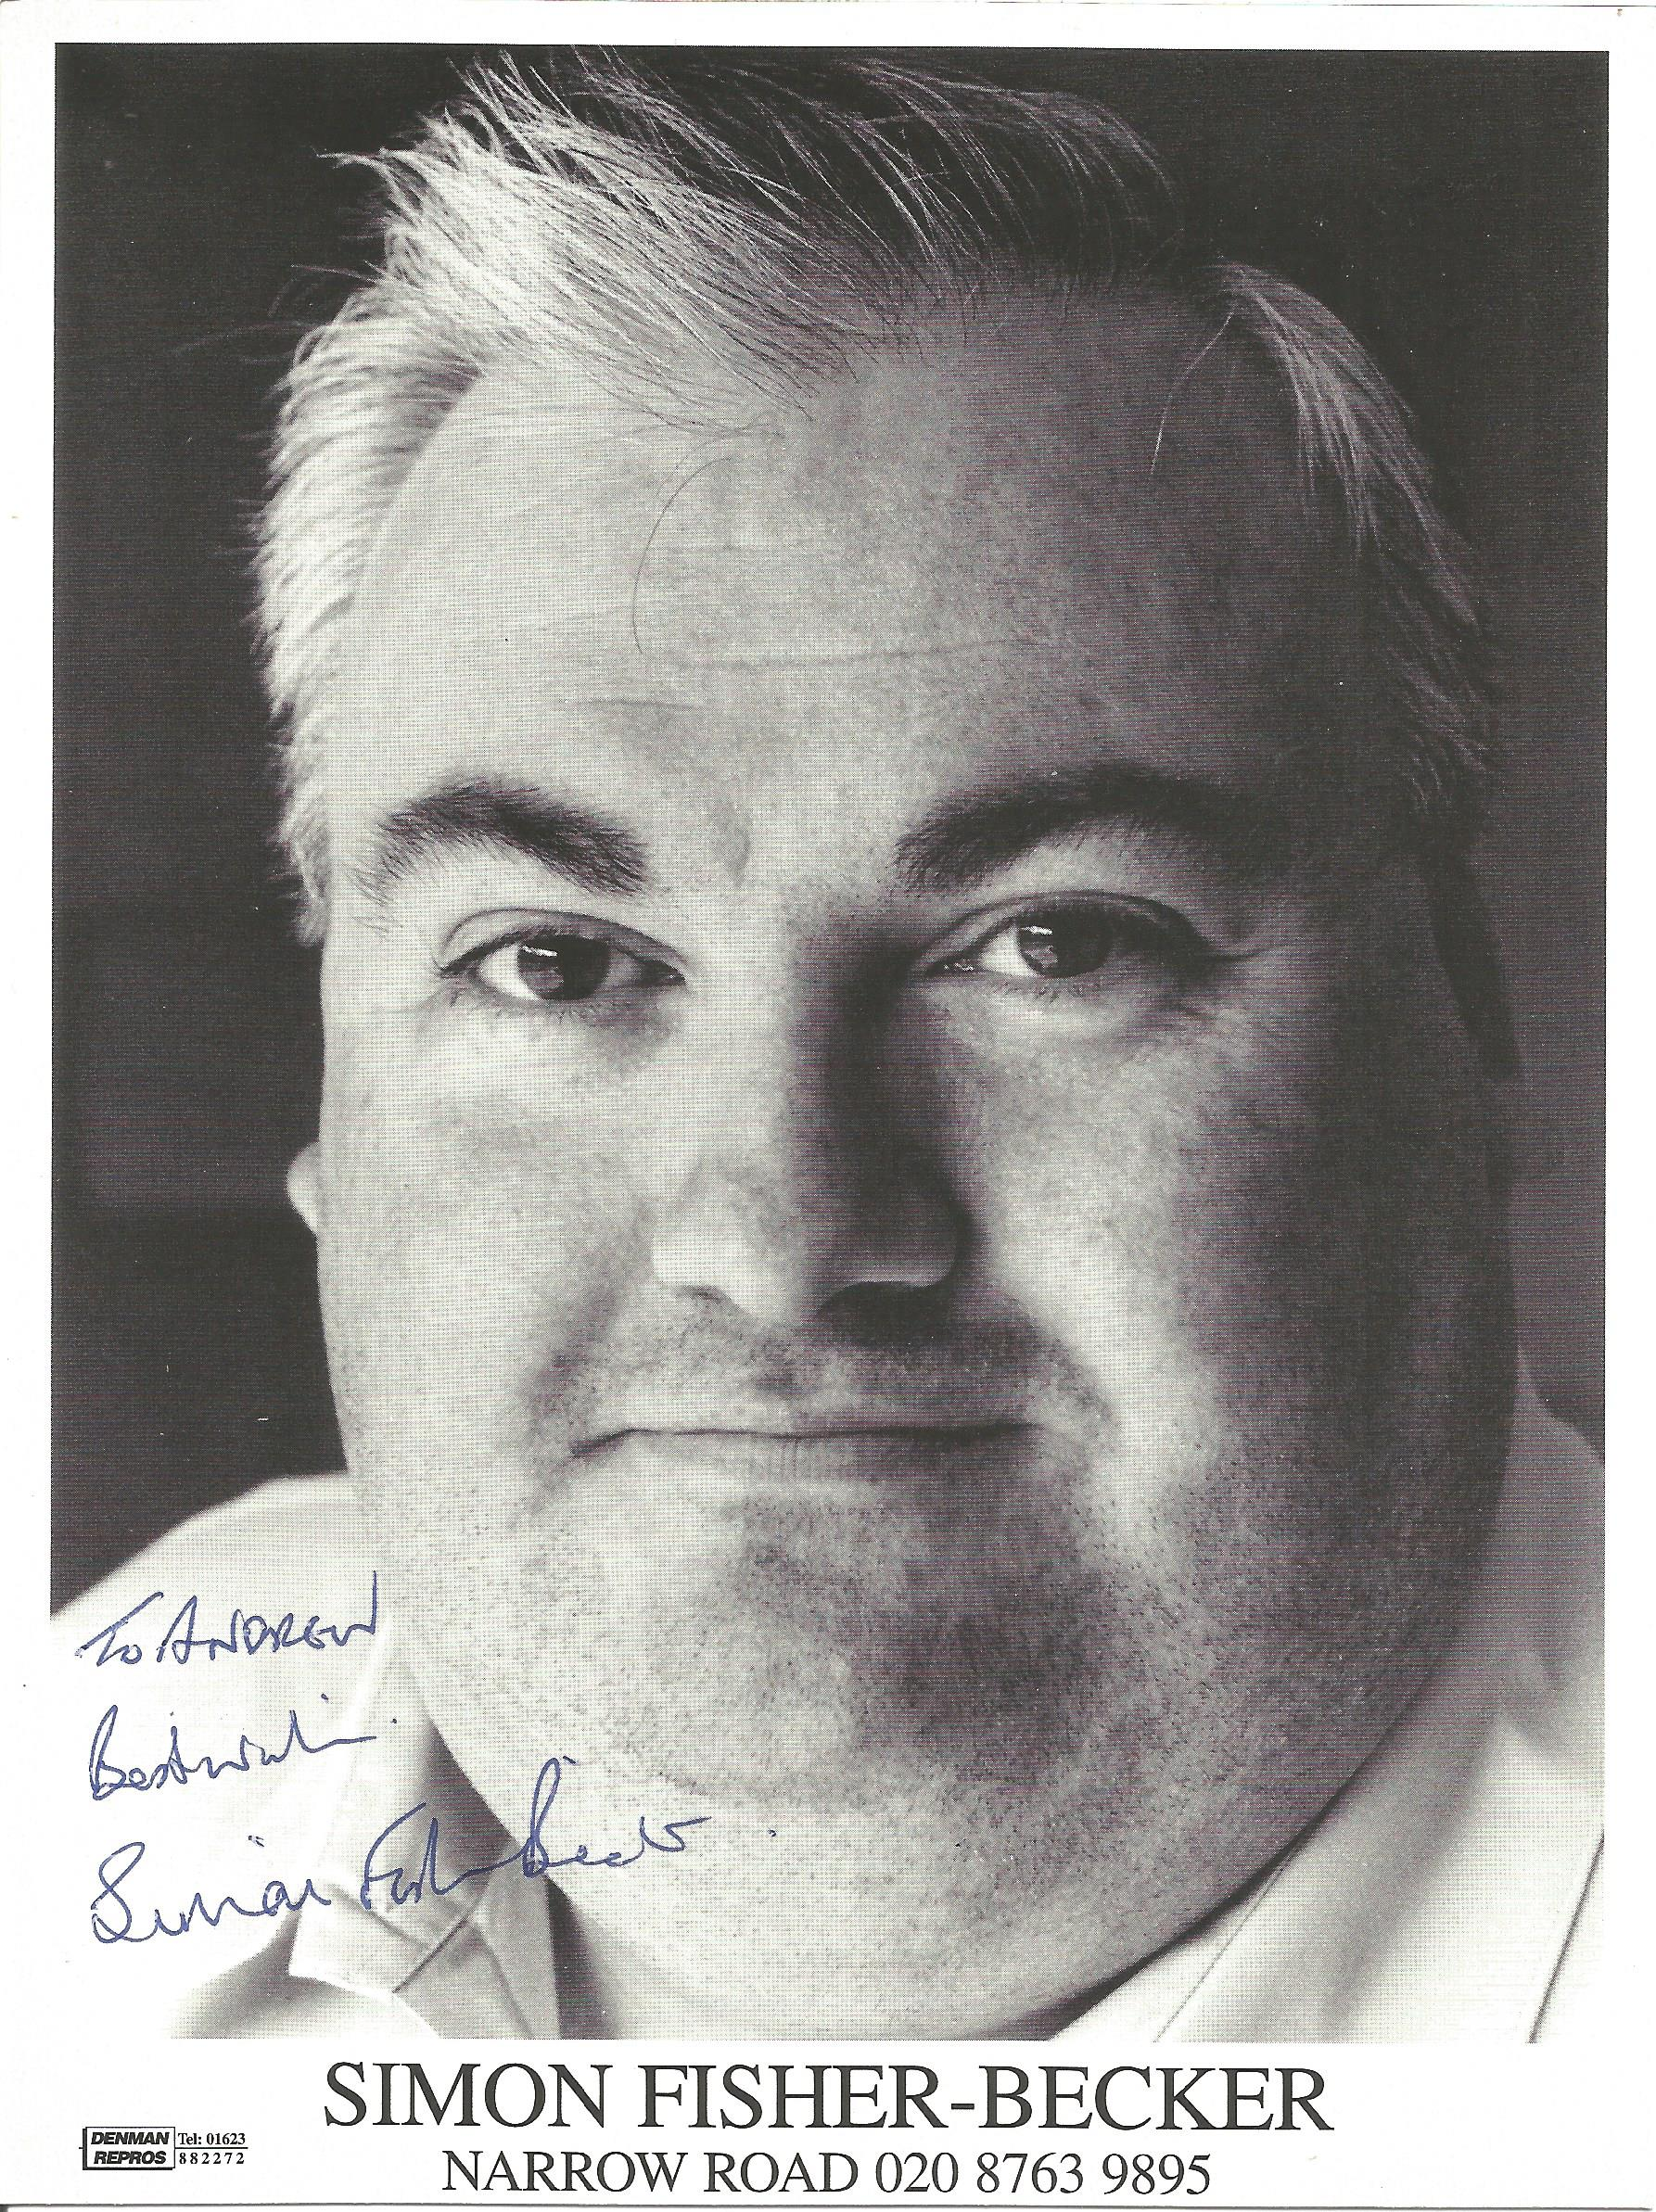 Actor Simon Fisher-Becker signed 8x6 black and white photo, dedicated to Andrew, together with